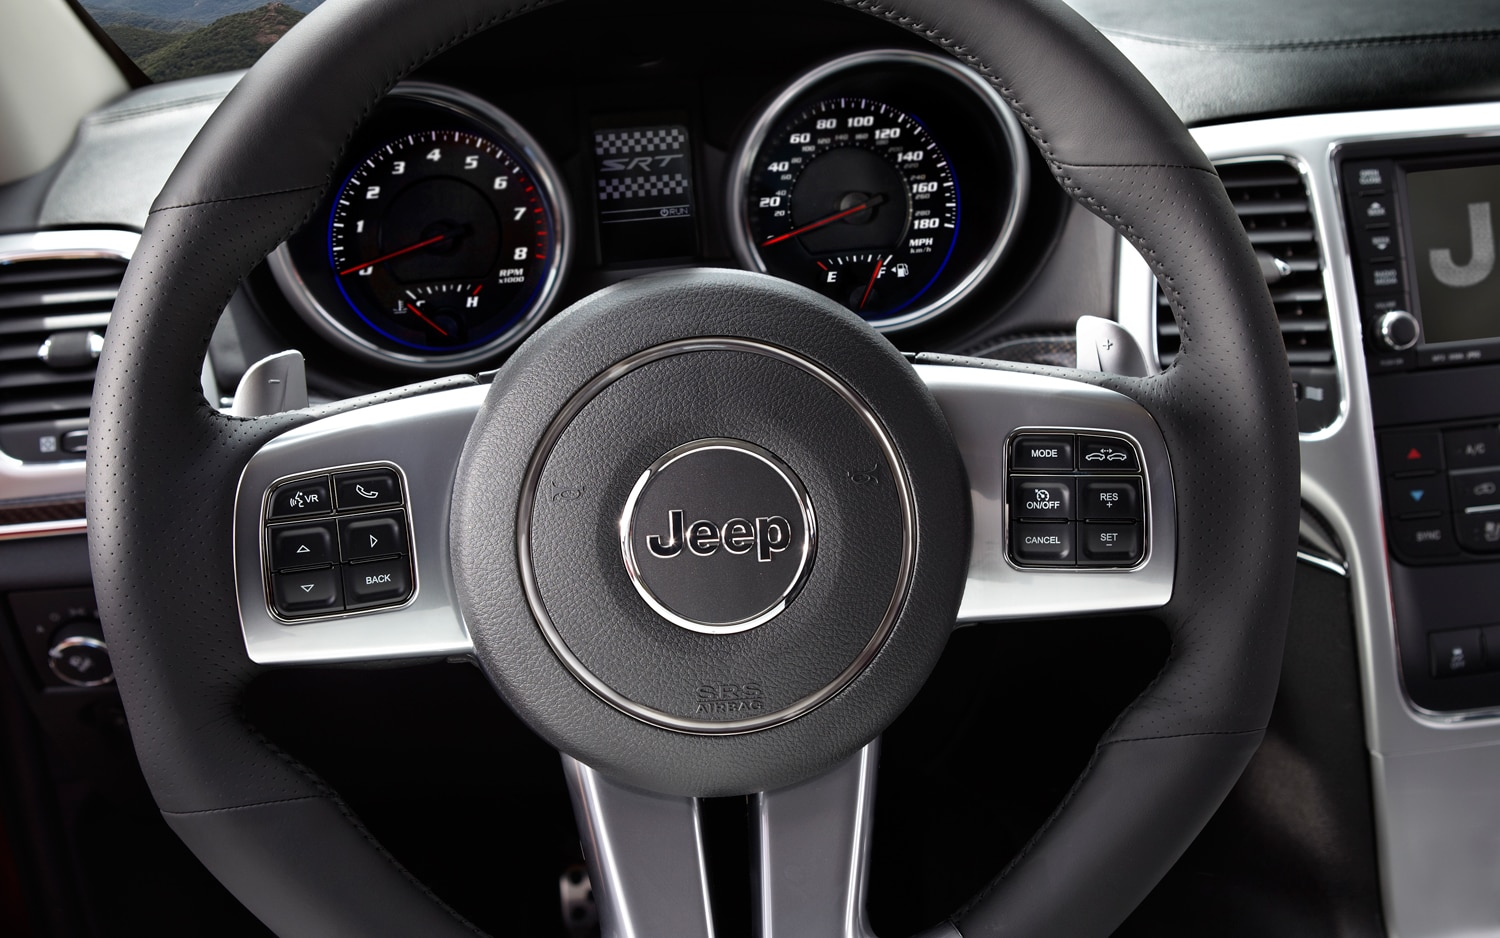 2012 Jeep Grand Cherokee SRT8 Steering Wheel